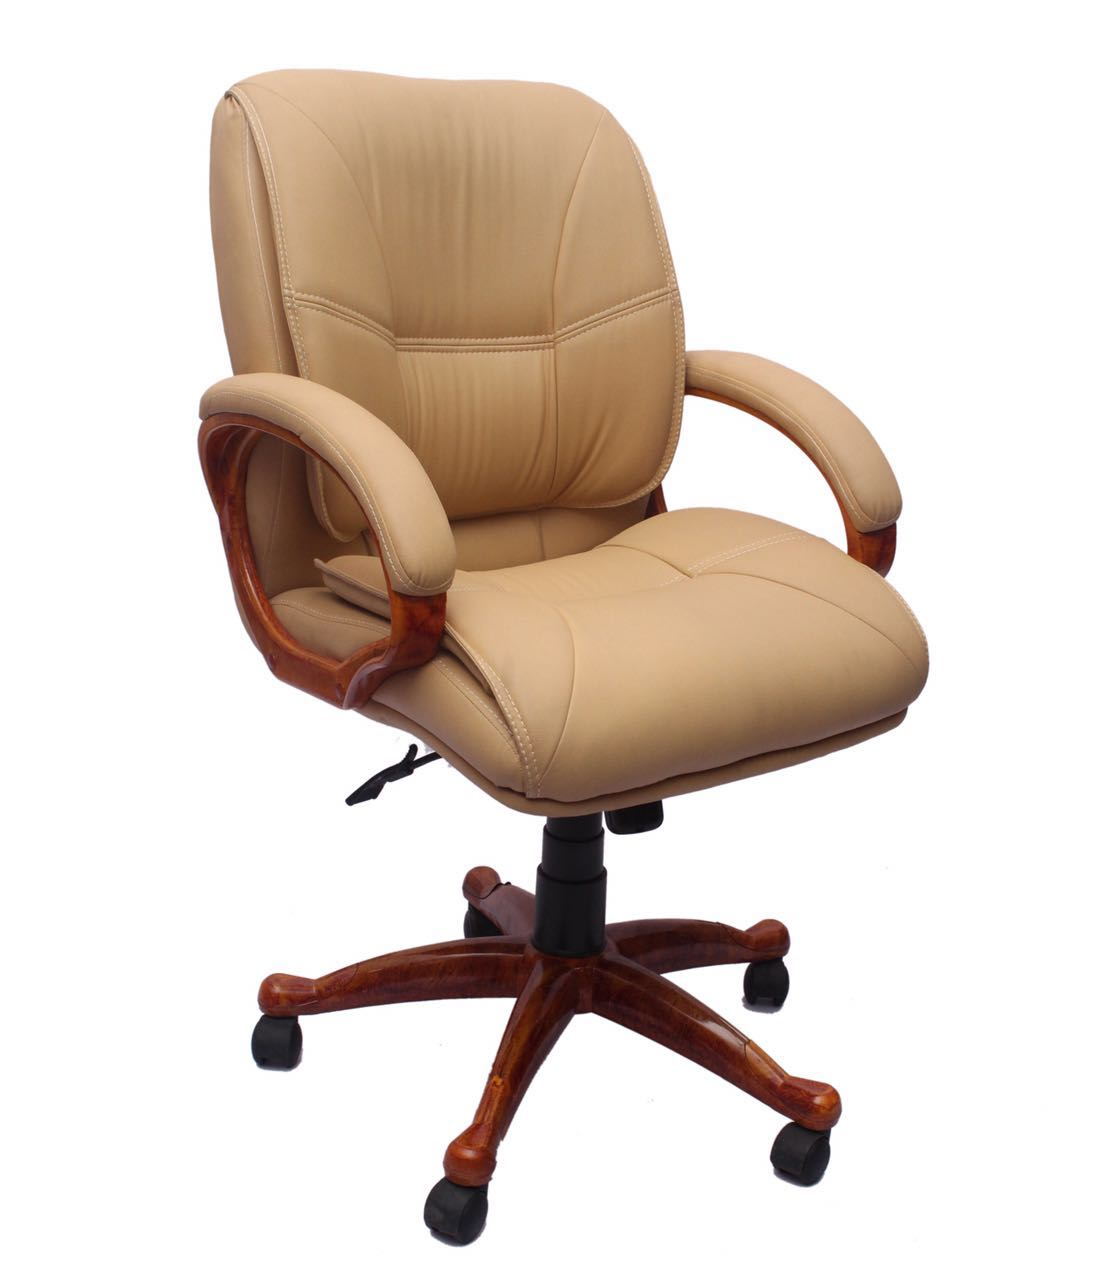 Office Chair Manufacturer in Anandvihar  V J INTERIOR PVT LTD is a leading Home Furniture designing & manufacturing company, Dinning Table, Bed, Sofa, Almirah, Wooden Furniture, Double Beds, Dinning Sets, Designer Wooden Furniture, Couches, Side Tables, Dining Chairs, Lounge Chairs, Stylish Bedroom Furniture, Royal Bedroom Furniture, Decorative Bedroom Furniture, Living Room Sofas, Designer Sofas, Fabric Sofas,